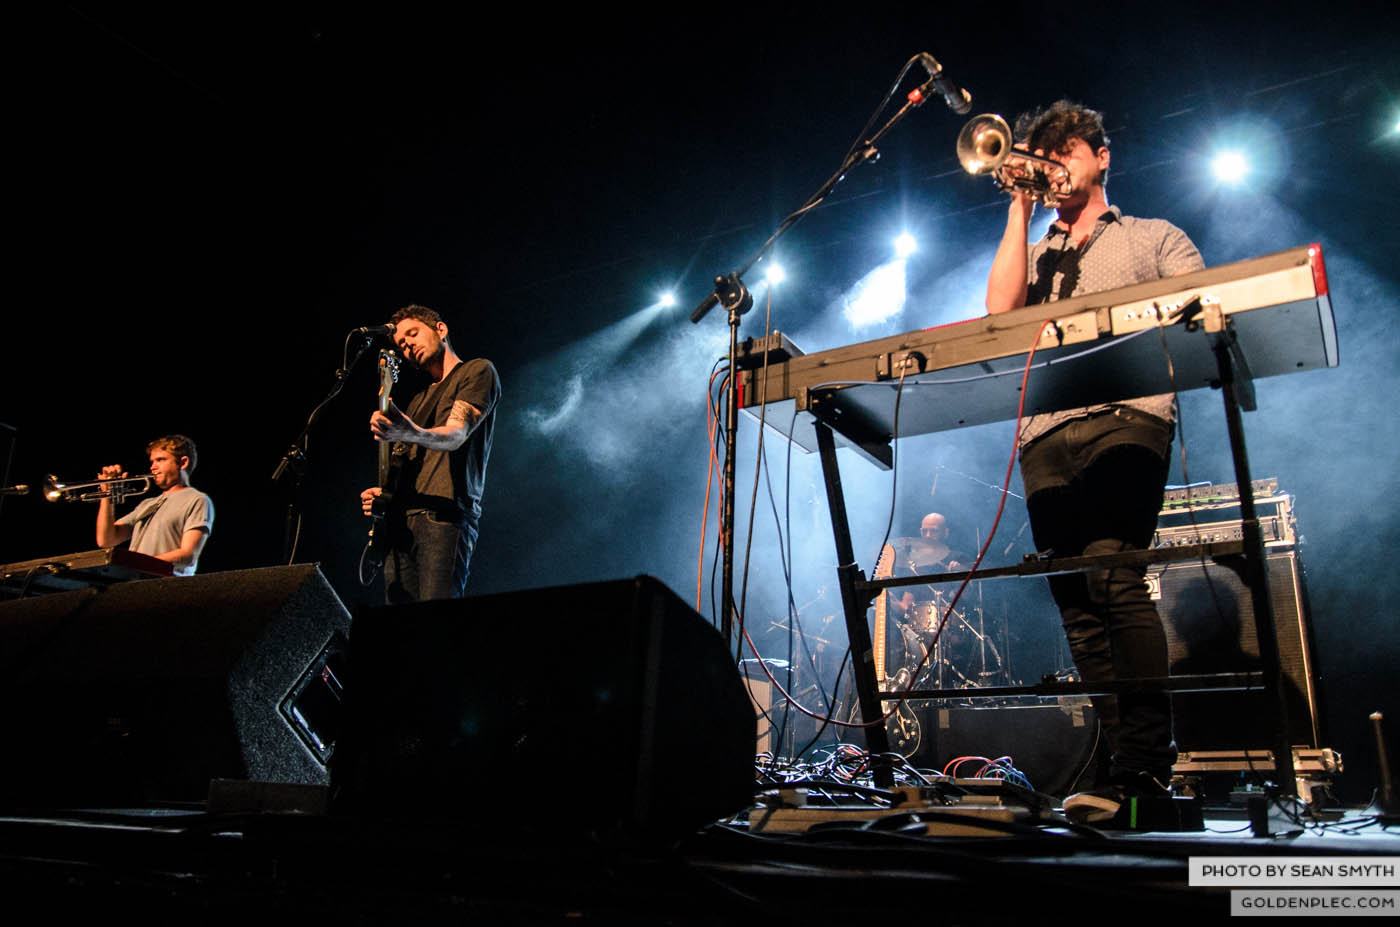 the-antlers-at-the-olympia-theatre-by-sean-smyth-30-10-14-11-of-22